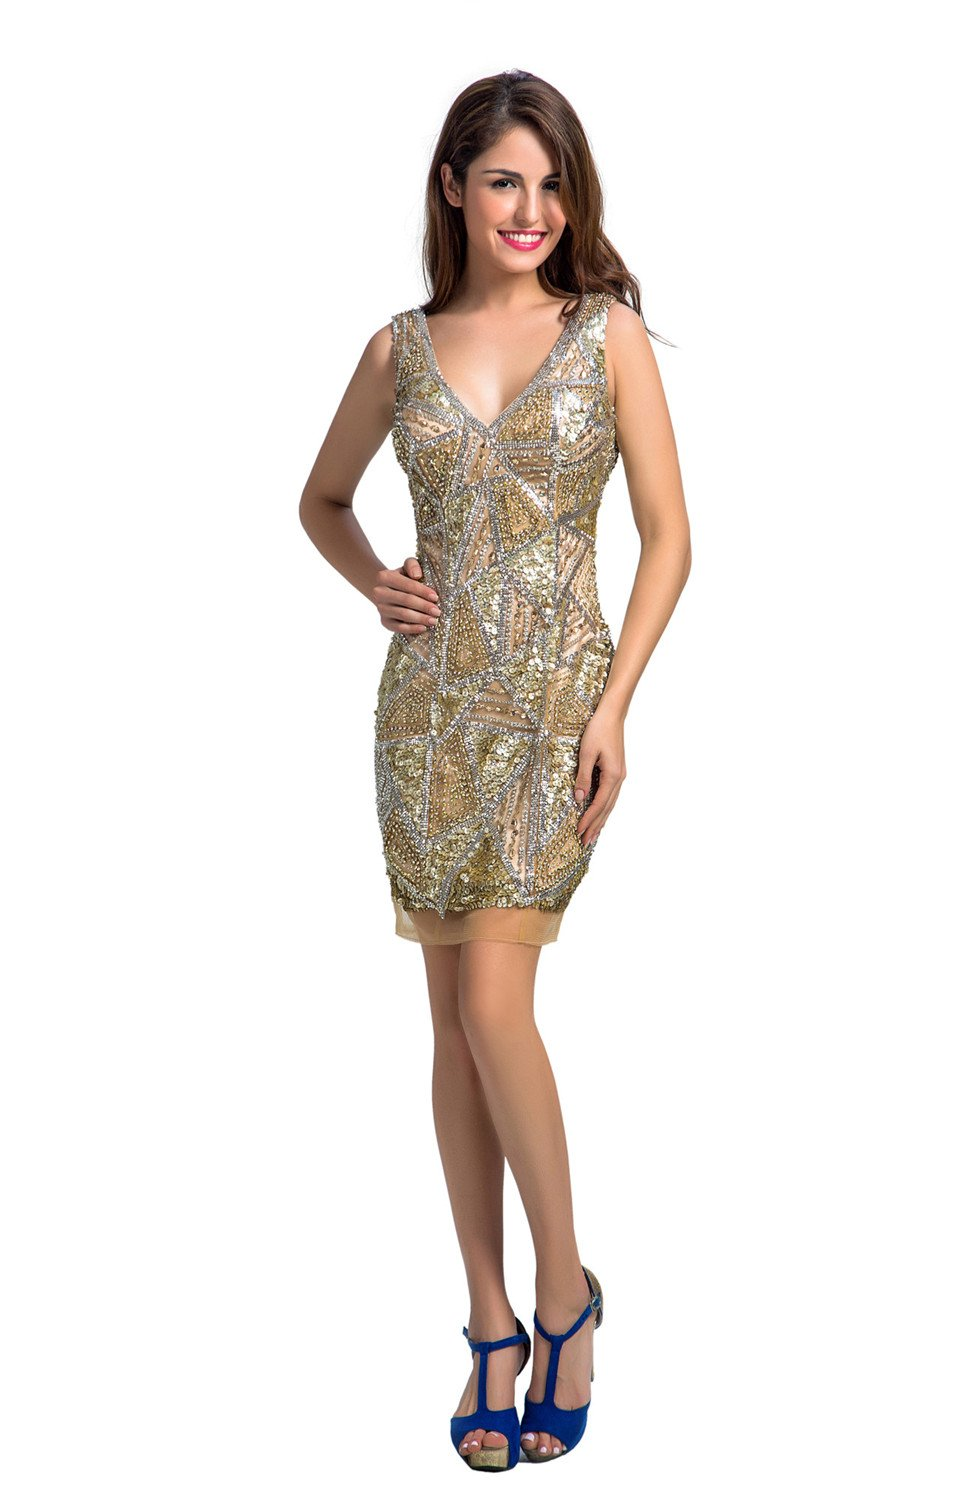 Chic Belle Gold Prom Dresses Short Cocktail Dress for Women V-neck Beaded 4